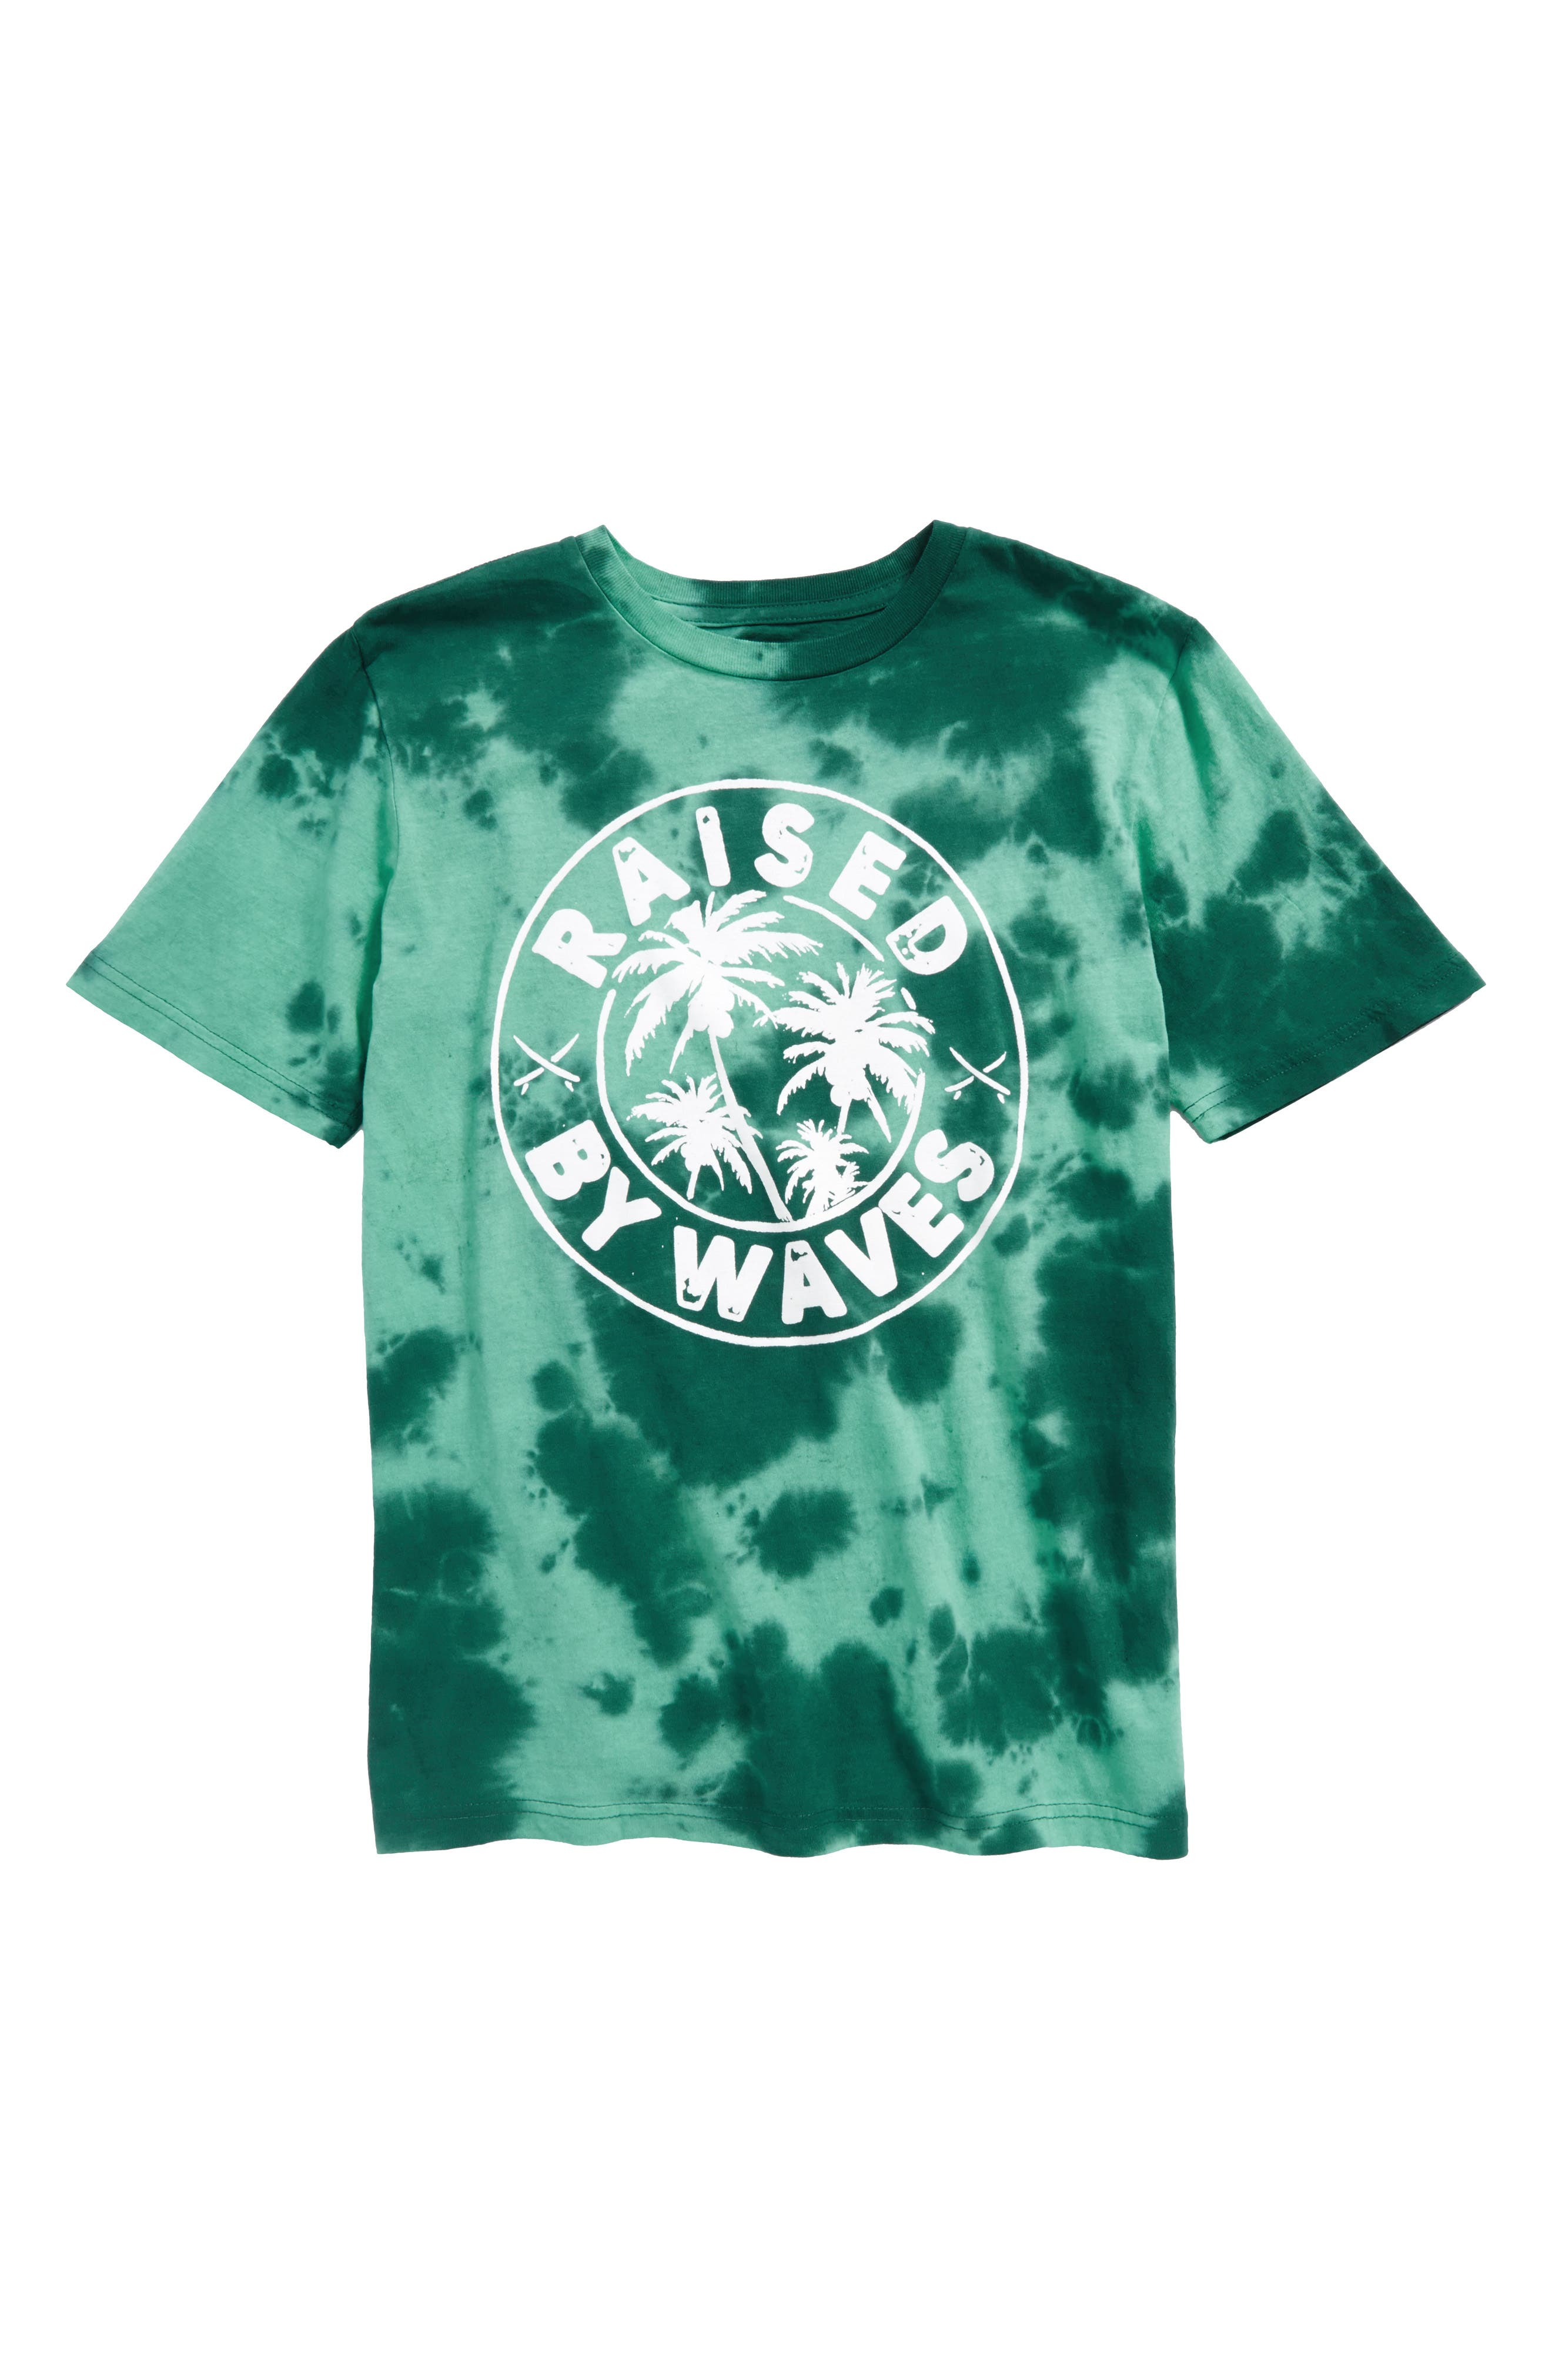 Raised by Waves Graphic T-Shirt,                             Main thumbnail 1, color,                             Teal Gem- Black Waves